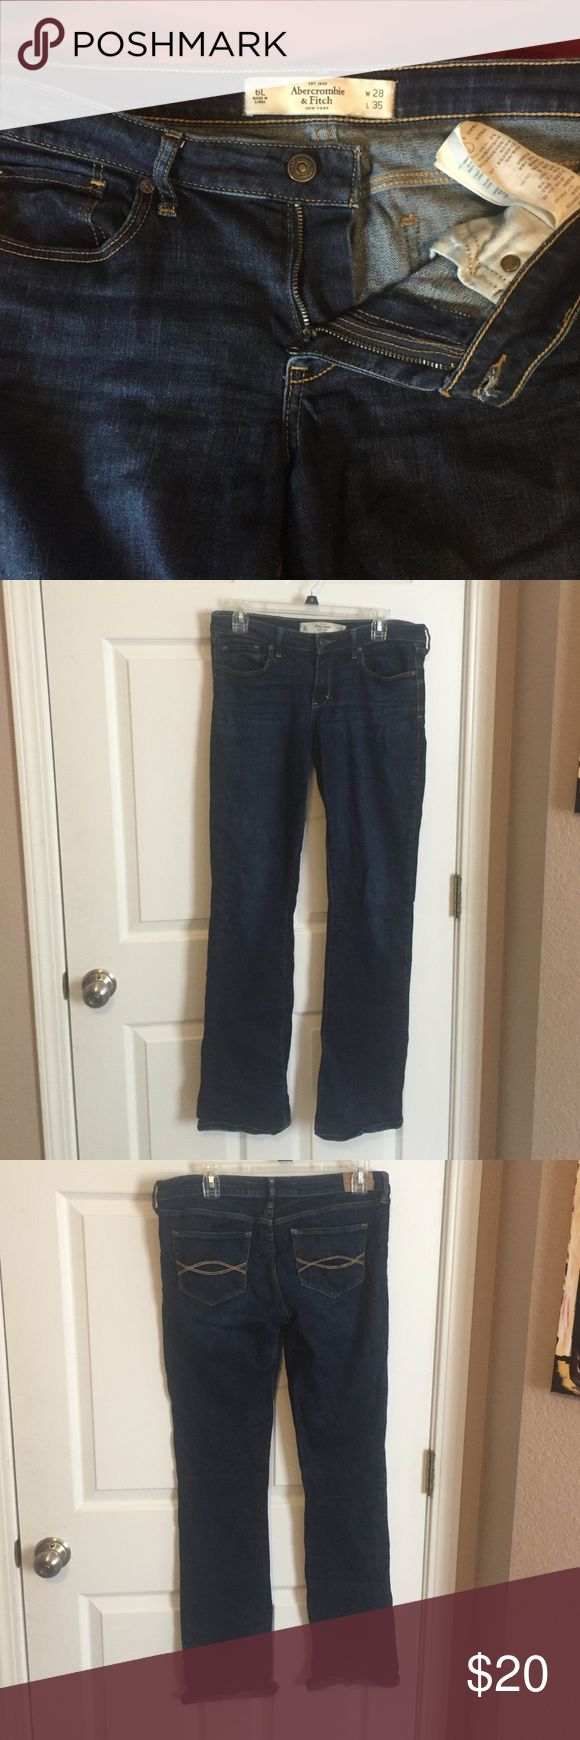 Abercrombie and Fitch boot cut jeans Super comfy jeans! Good used condition! Abercrombie & Fitch Jeans Boot Cut